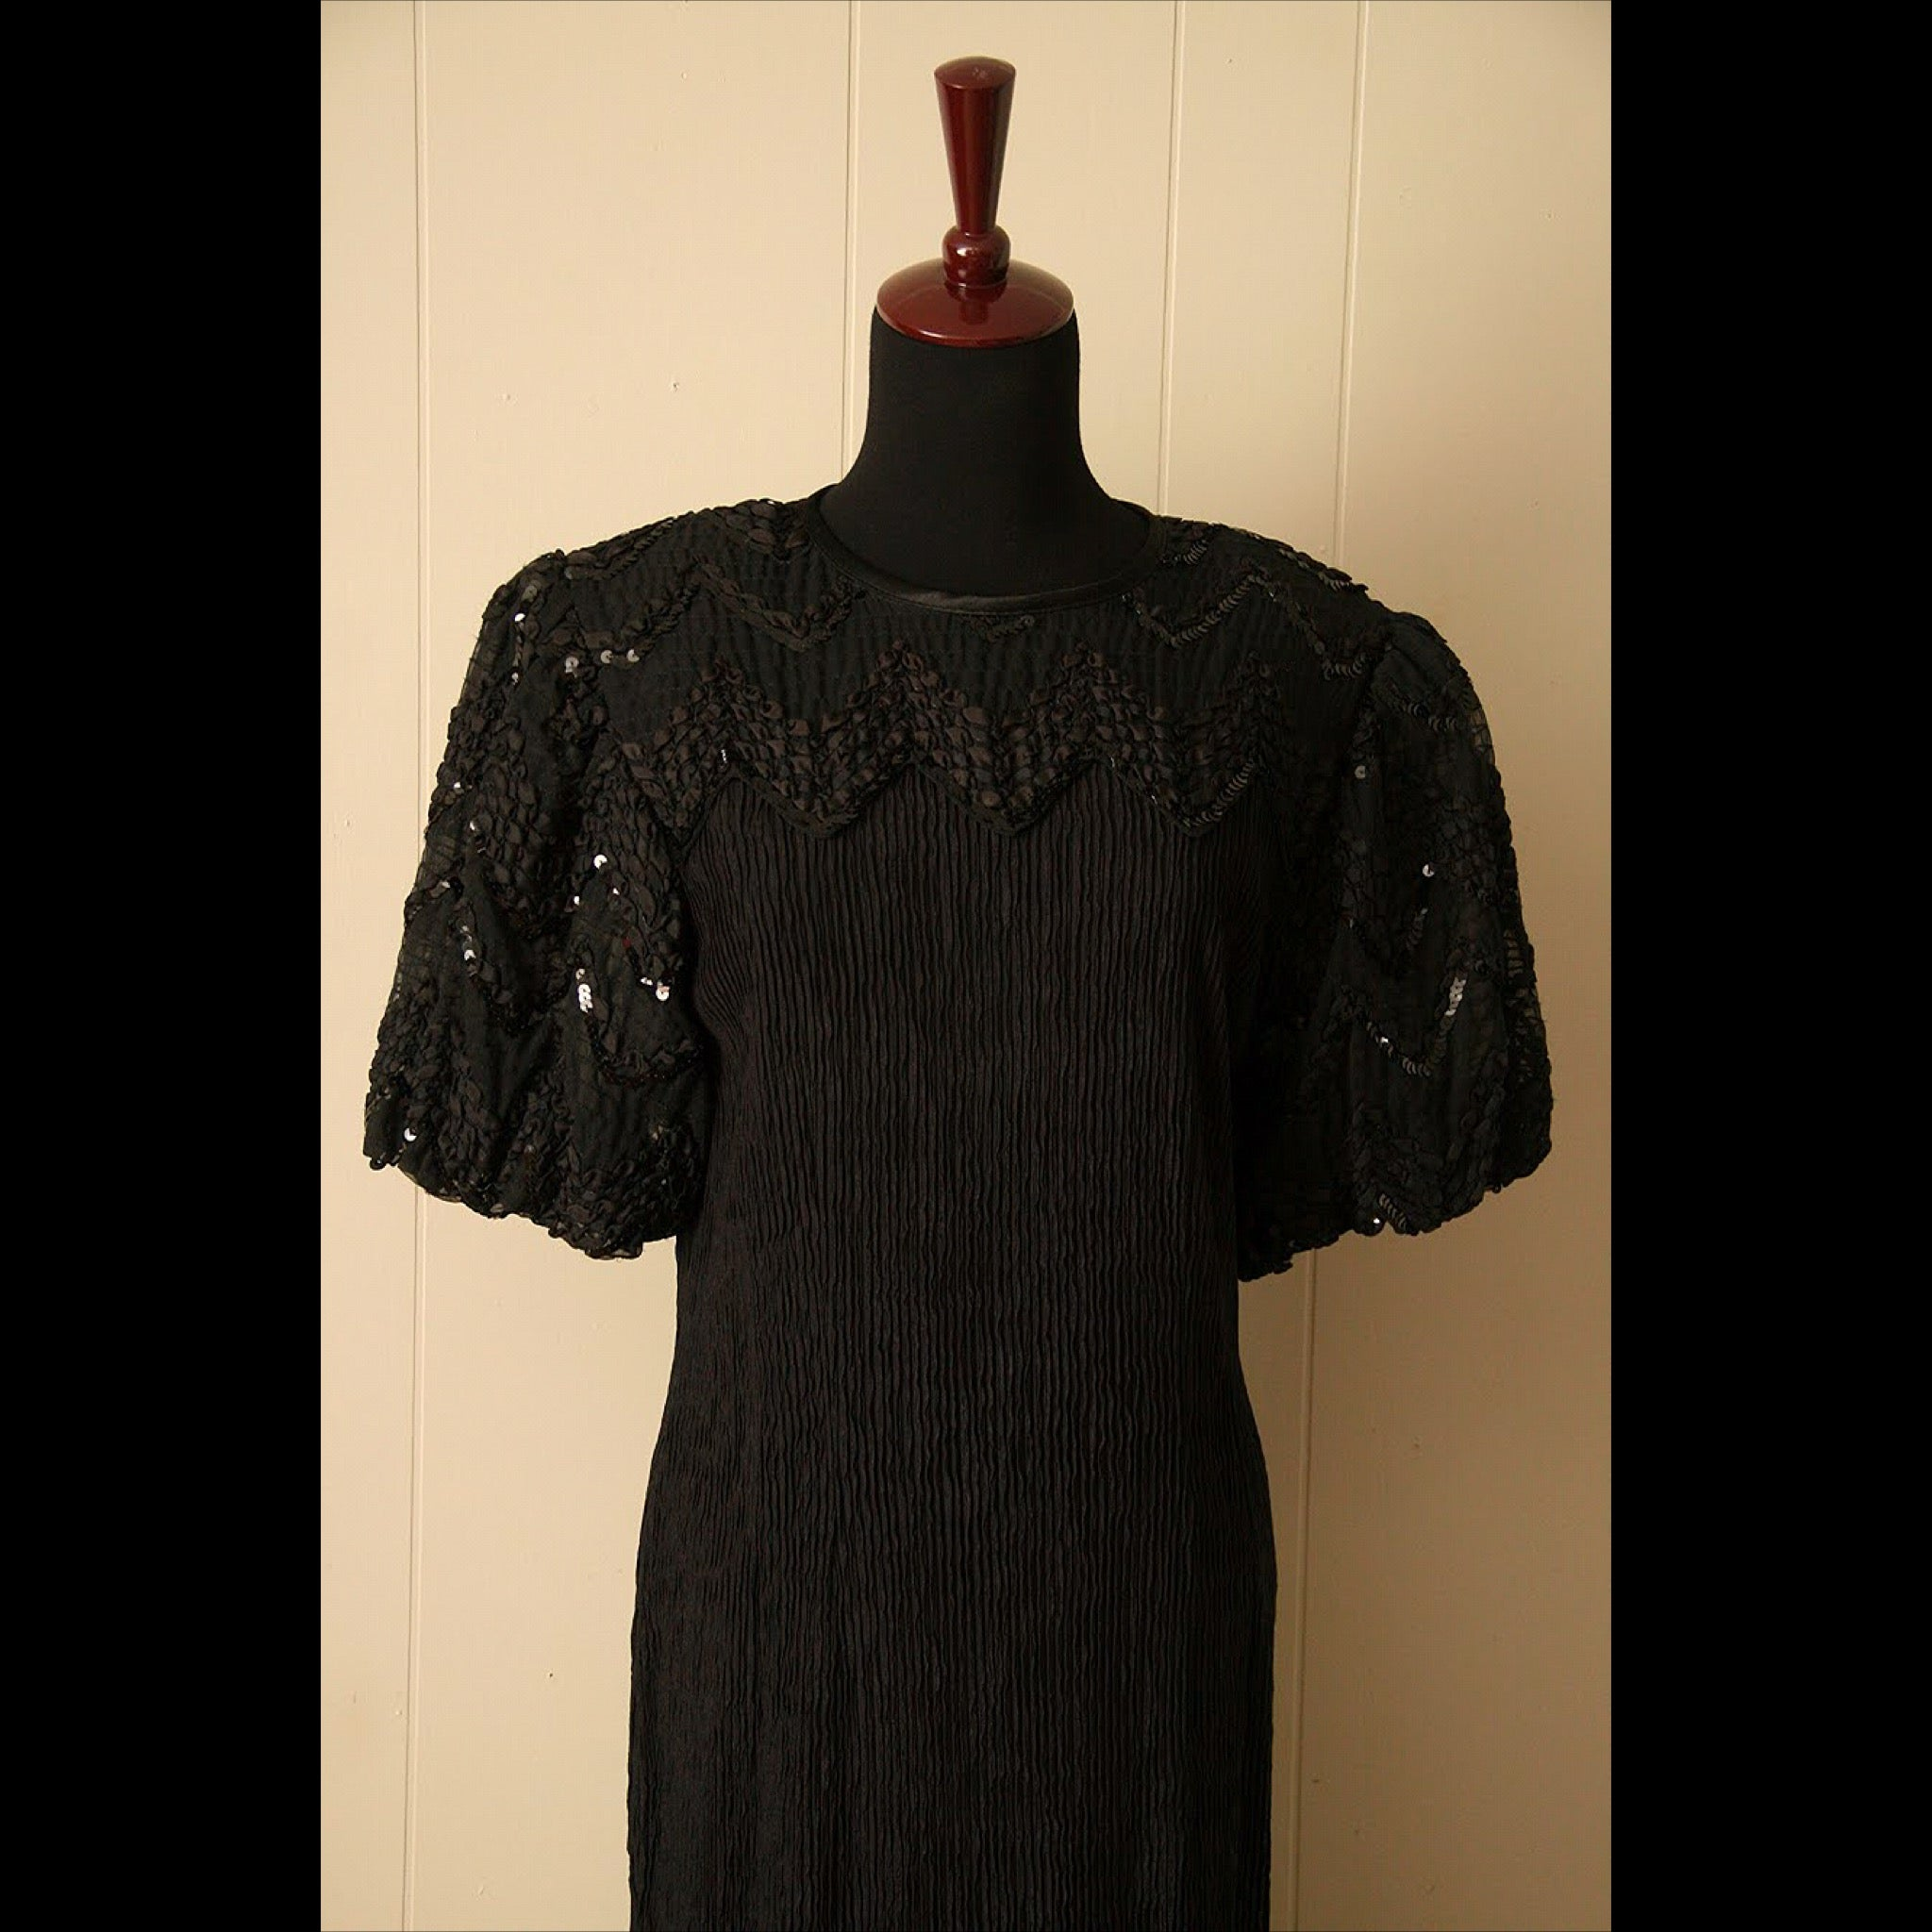 Long Black Sequin Vintage Dress (M/L)